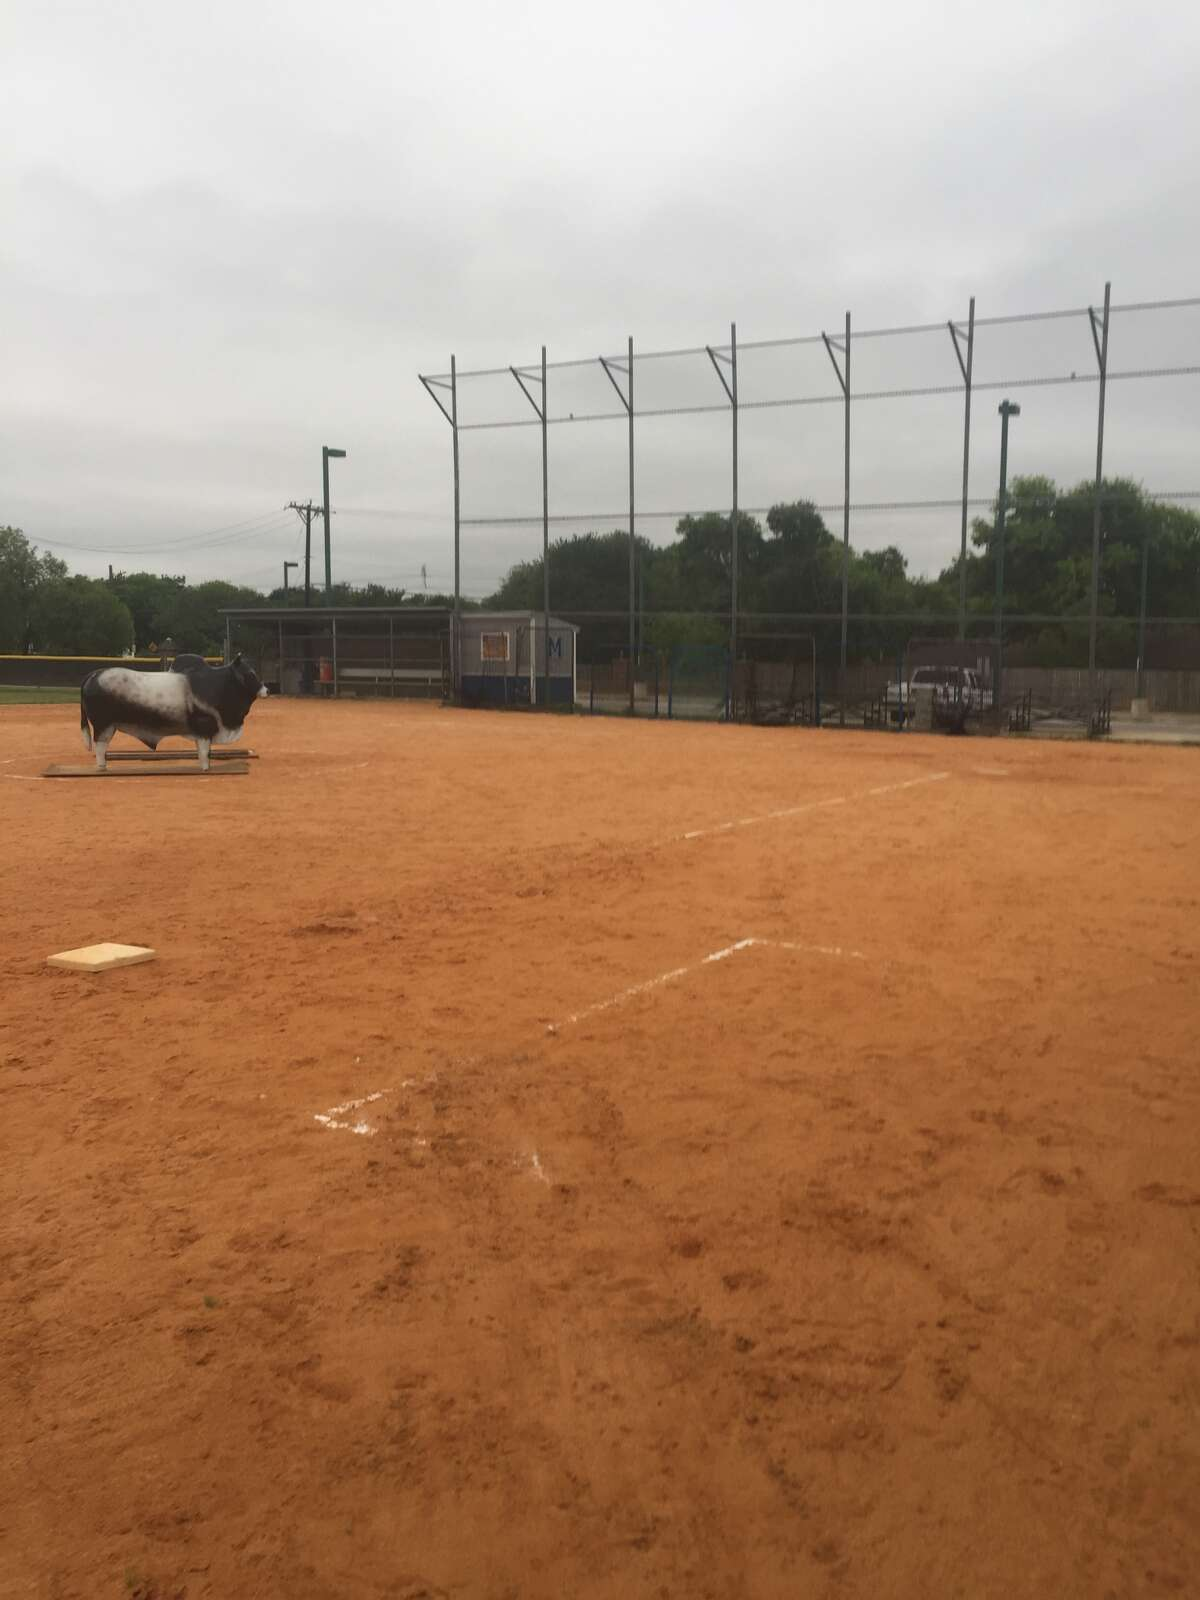 NEISD officials say the students removed the statue from a courtyard and placed it on the school's softball field early Tuesday morning.